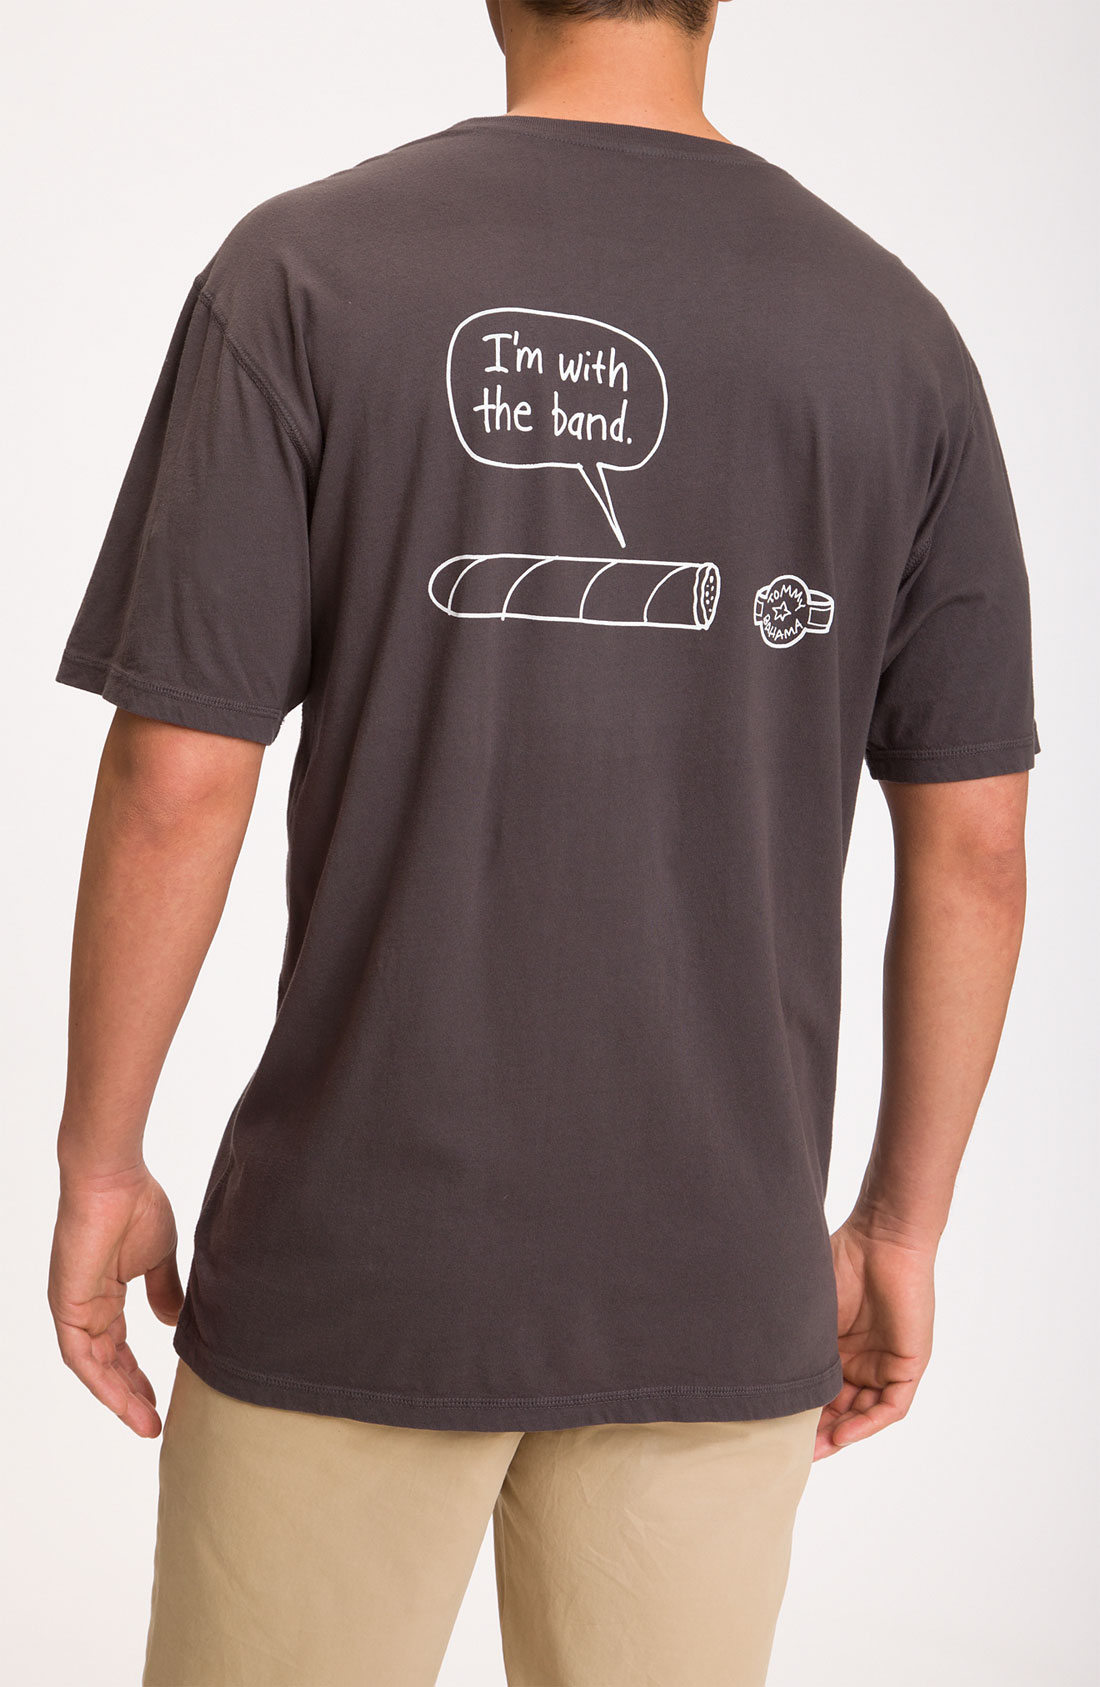 Tommy Bahama Im With The Band Tshirt In Gray For Men Ash